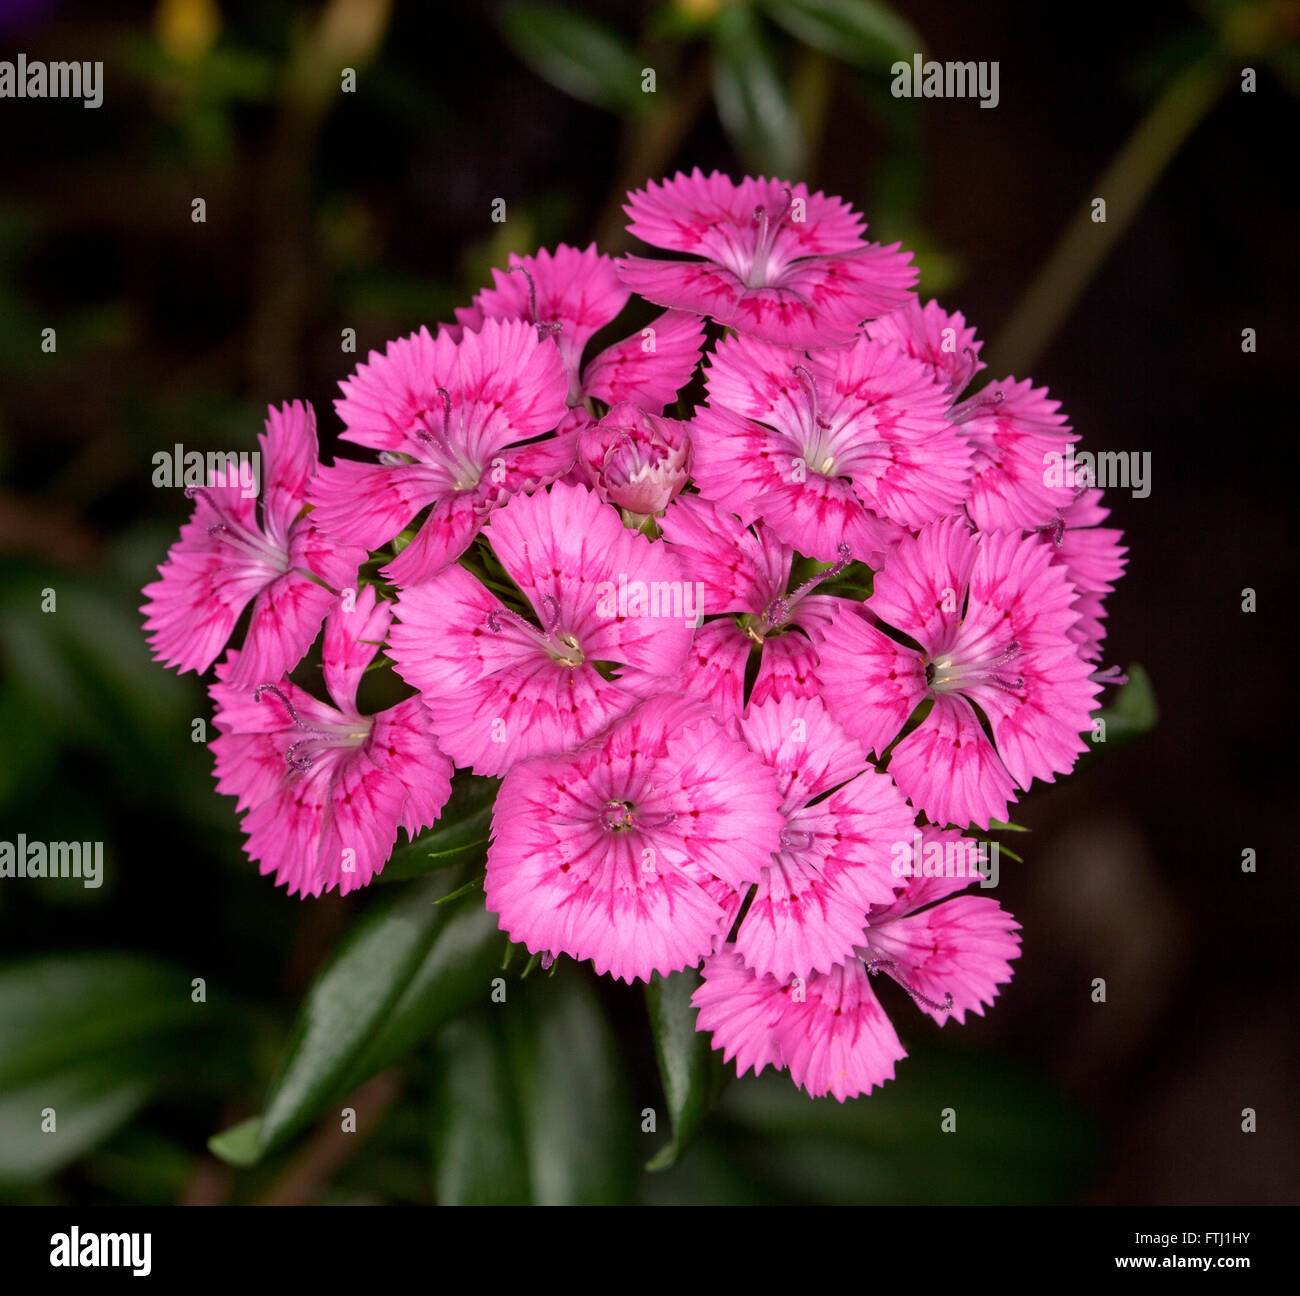 Large cluster of stunning vivid pink perfumed flowers of dianthus large cluster of stunning vivid pink perfumed flowers of dianthus barbatus on dark background garden perennial mightylinksfo